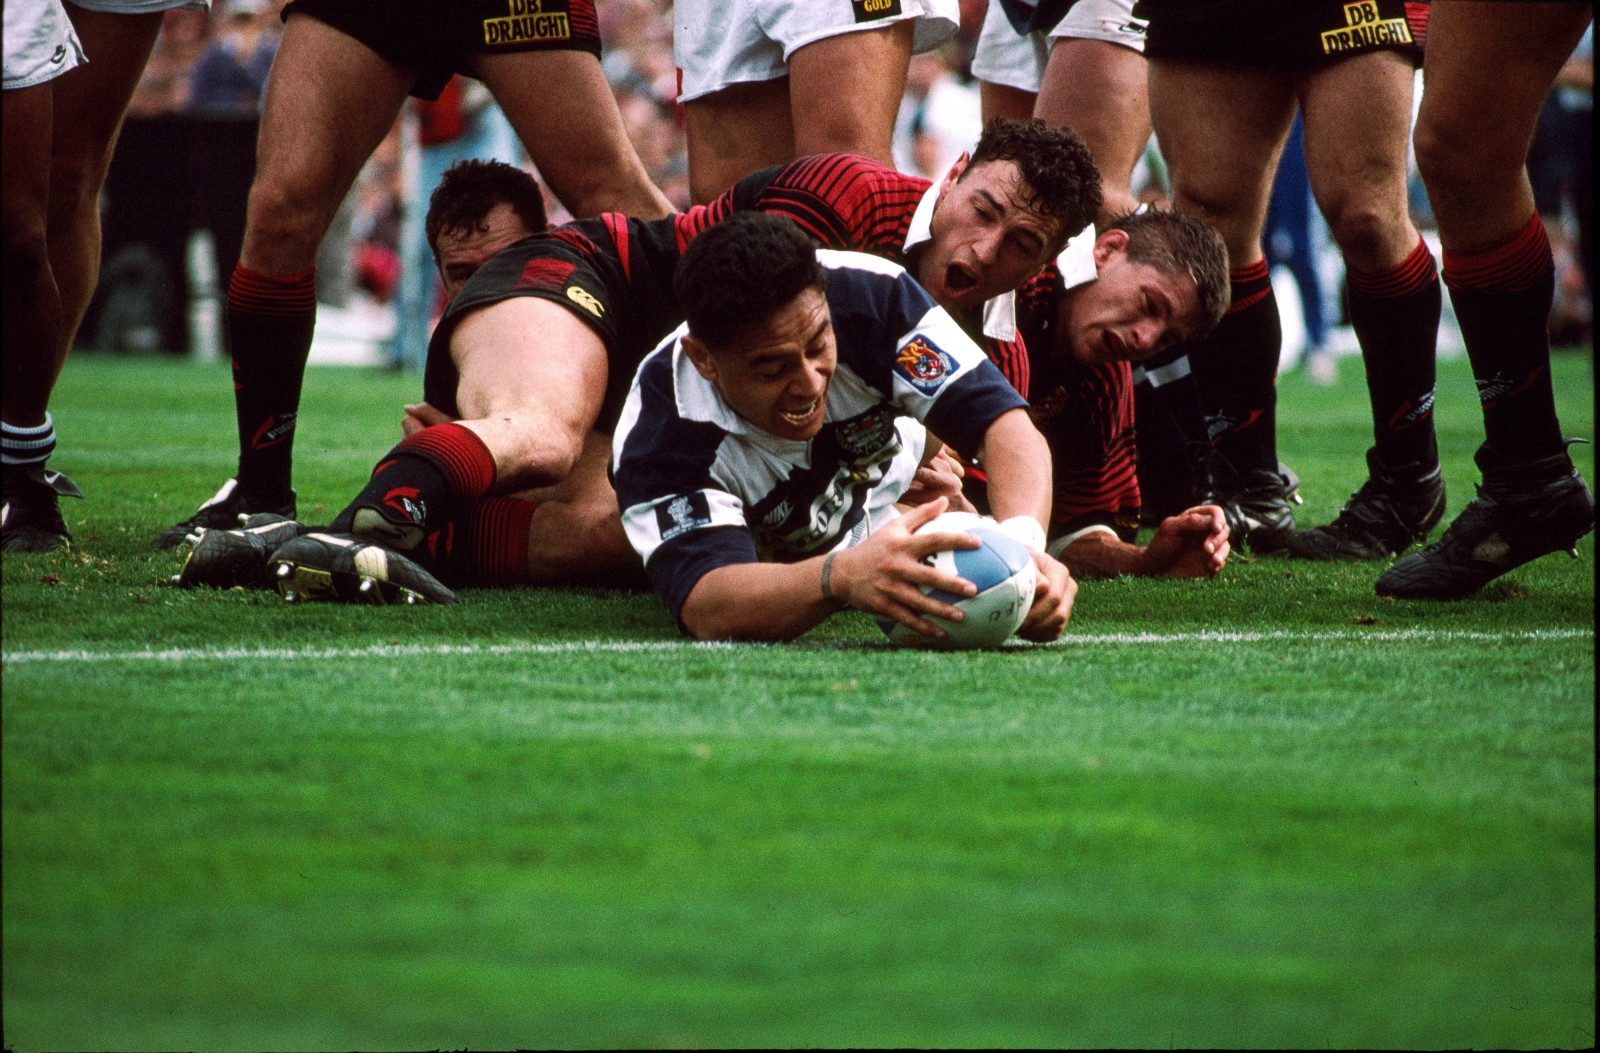 Satisfaction lights up the face of Auckland's Eroni Clarke as he grounds the ball across the try line despite Canterbury's despairing efforts to bury him during a successful Ranfurly Shielf challenge by Auckland at Lancaster Park, 1995.